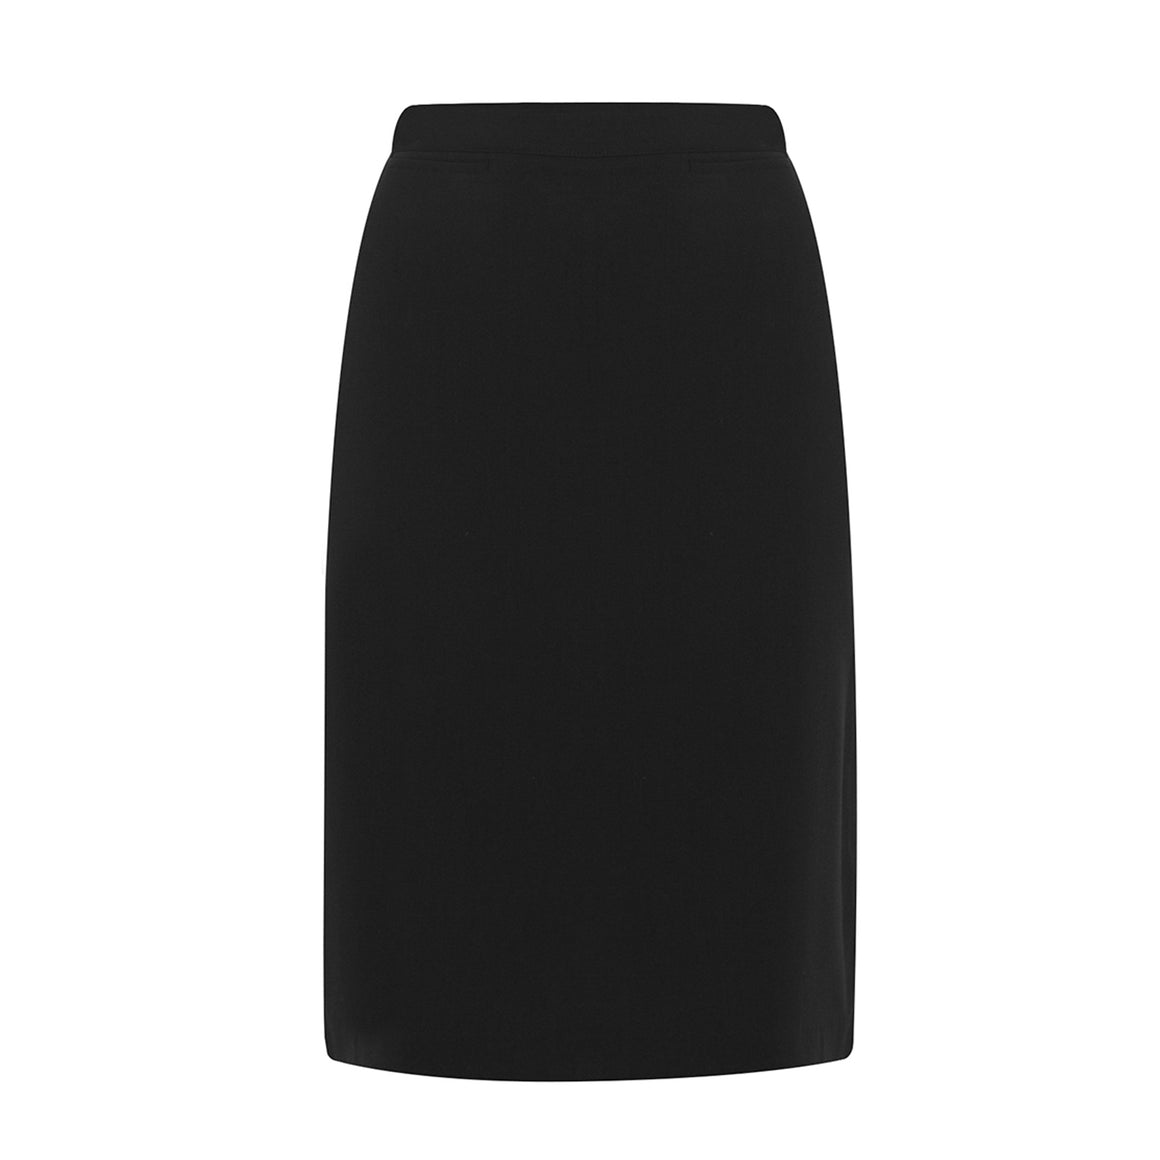 East Bergholt High Skirt